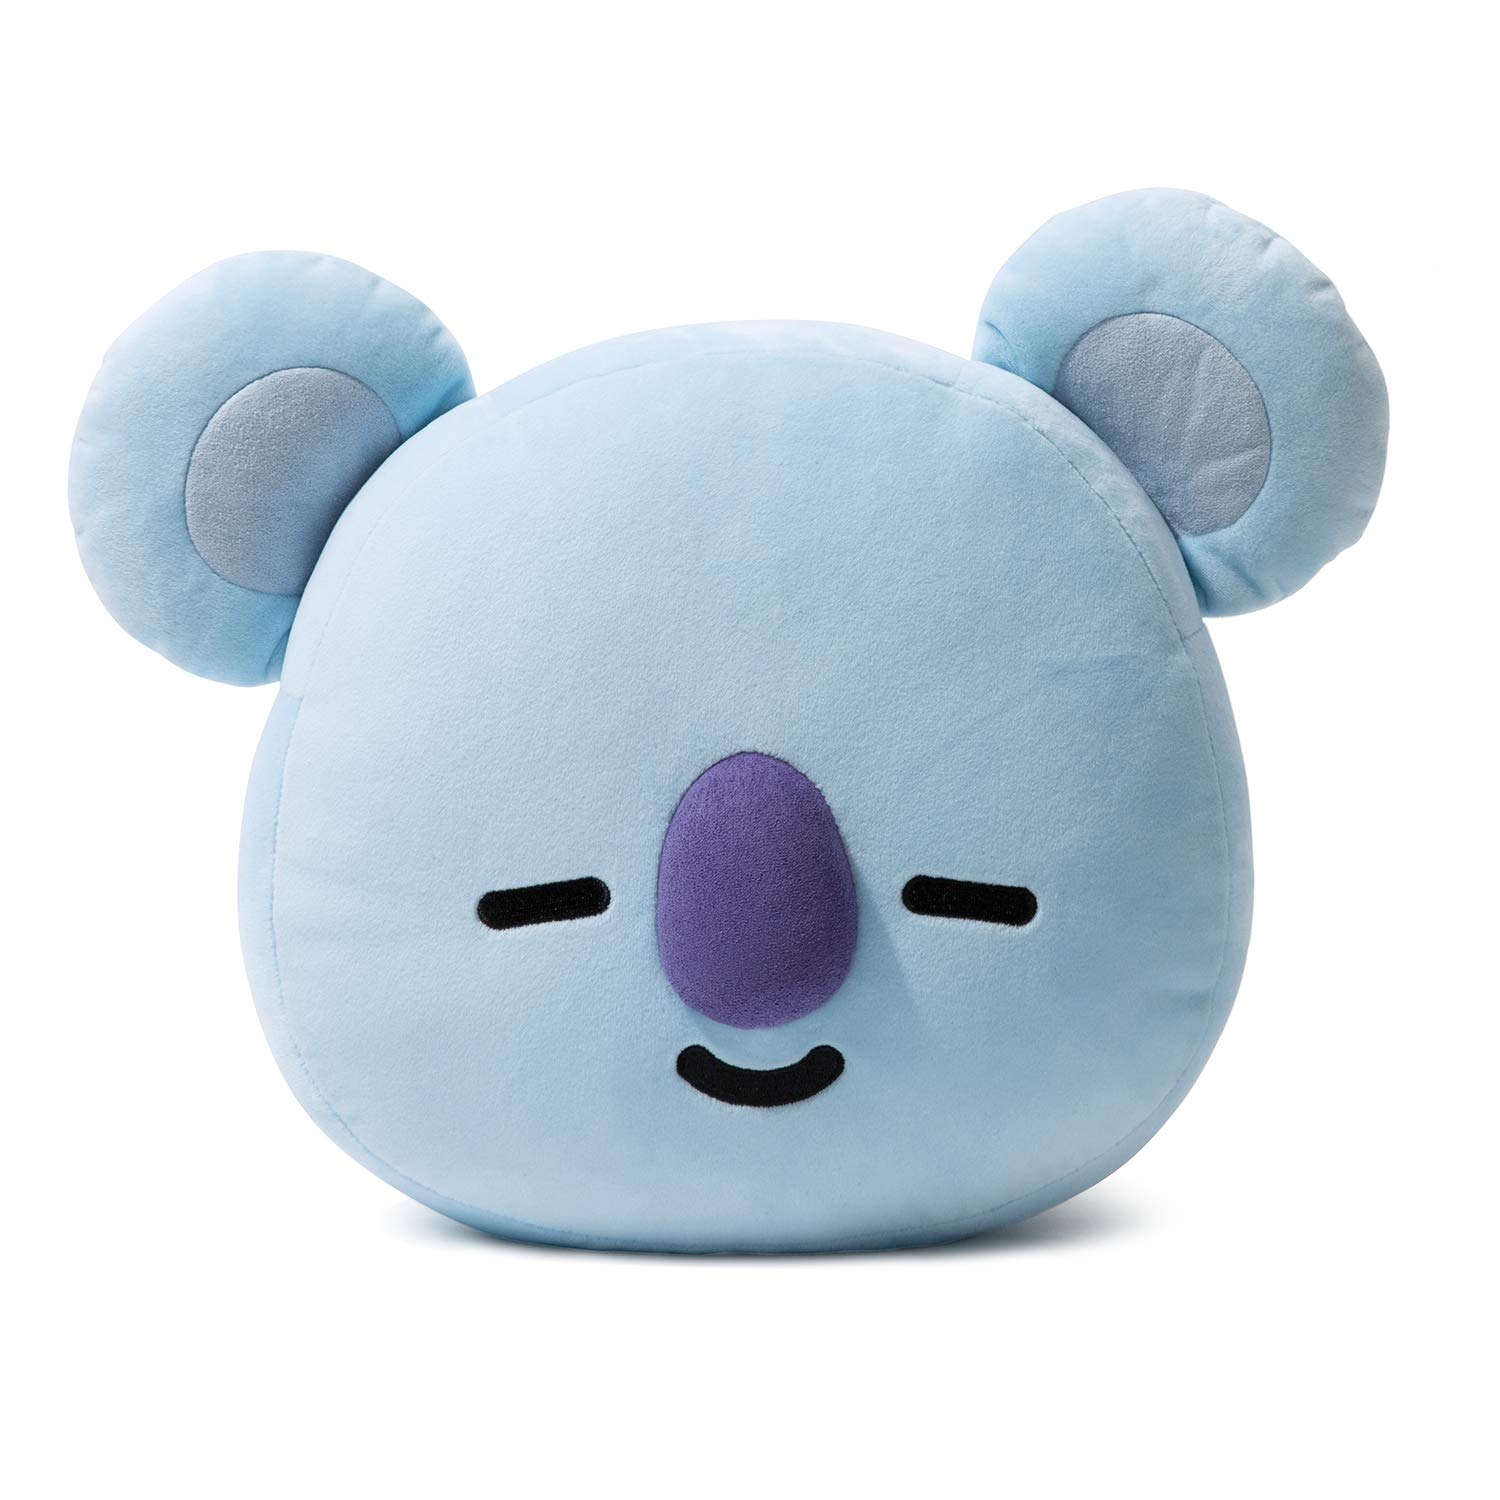 BT21 Official Merchandise by Line Friends - KOYA Decorative Throw Pillows Cushion, 11 Inch by BT21